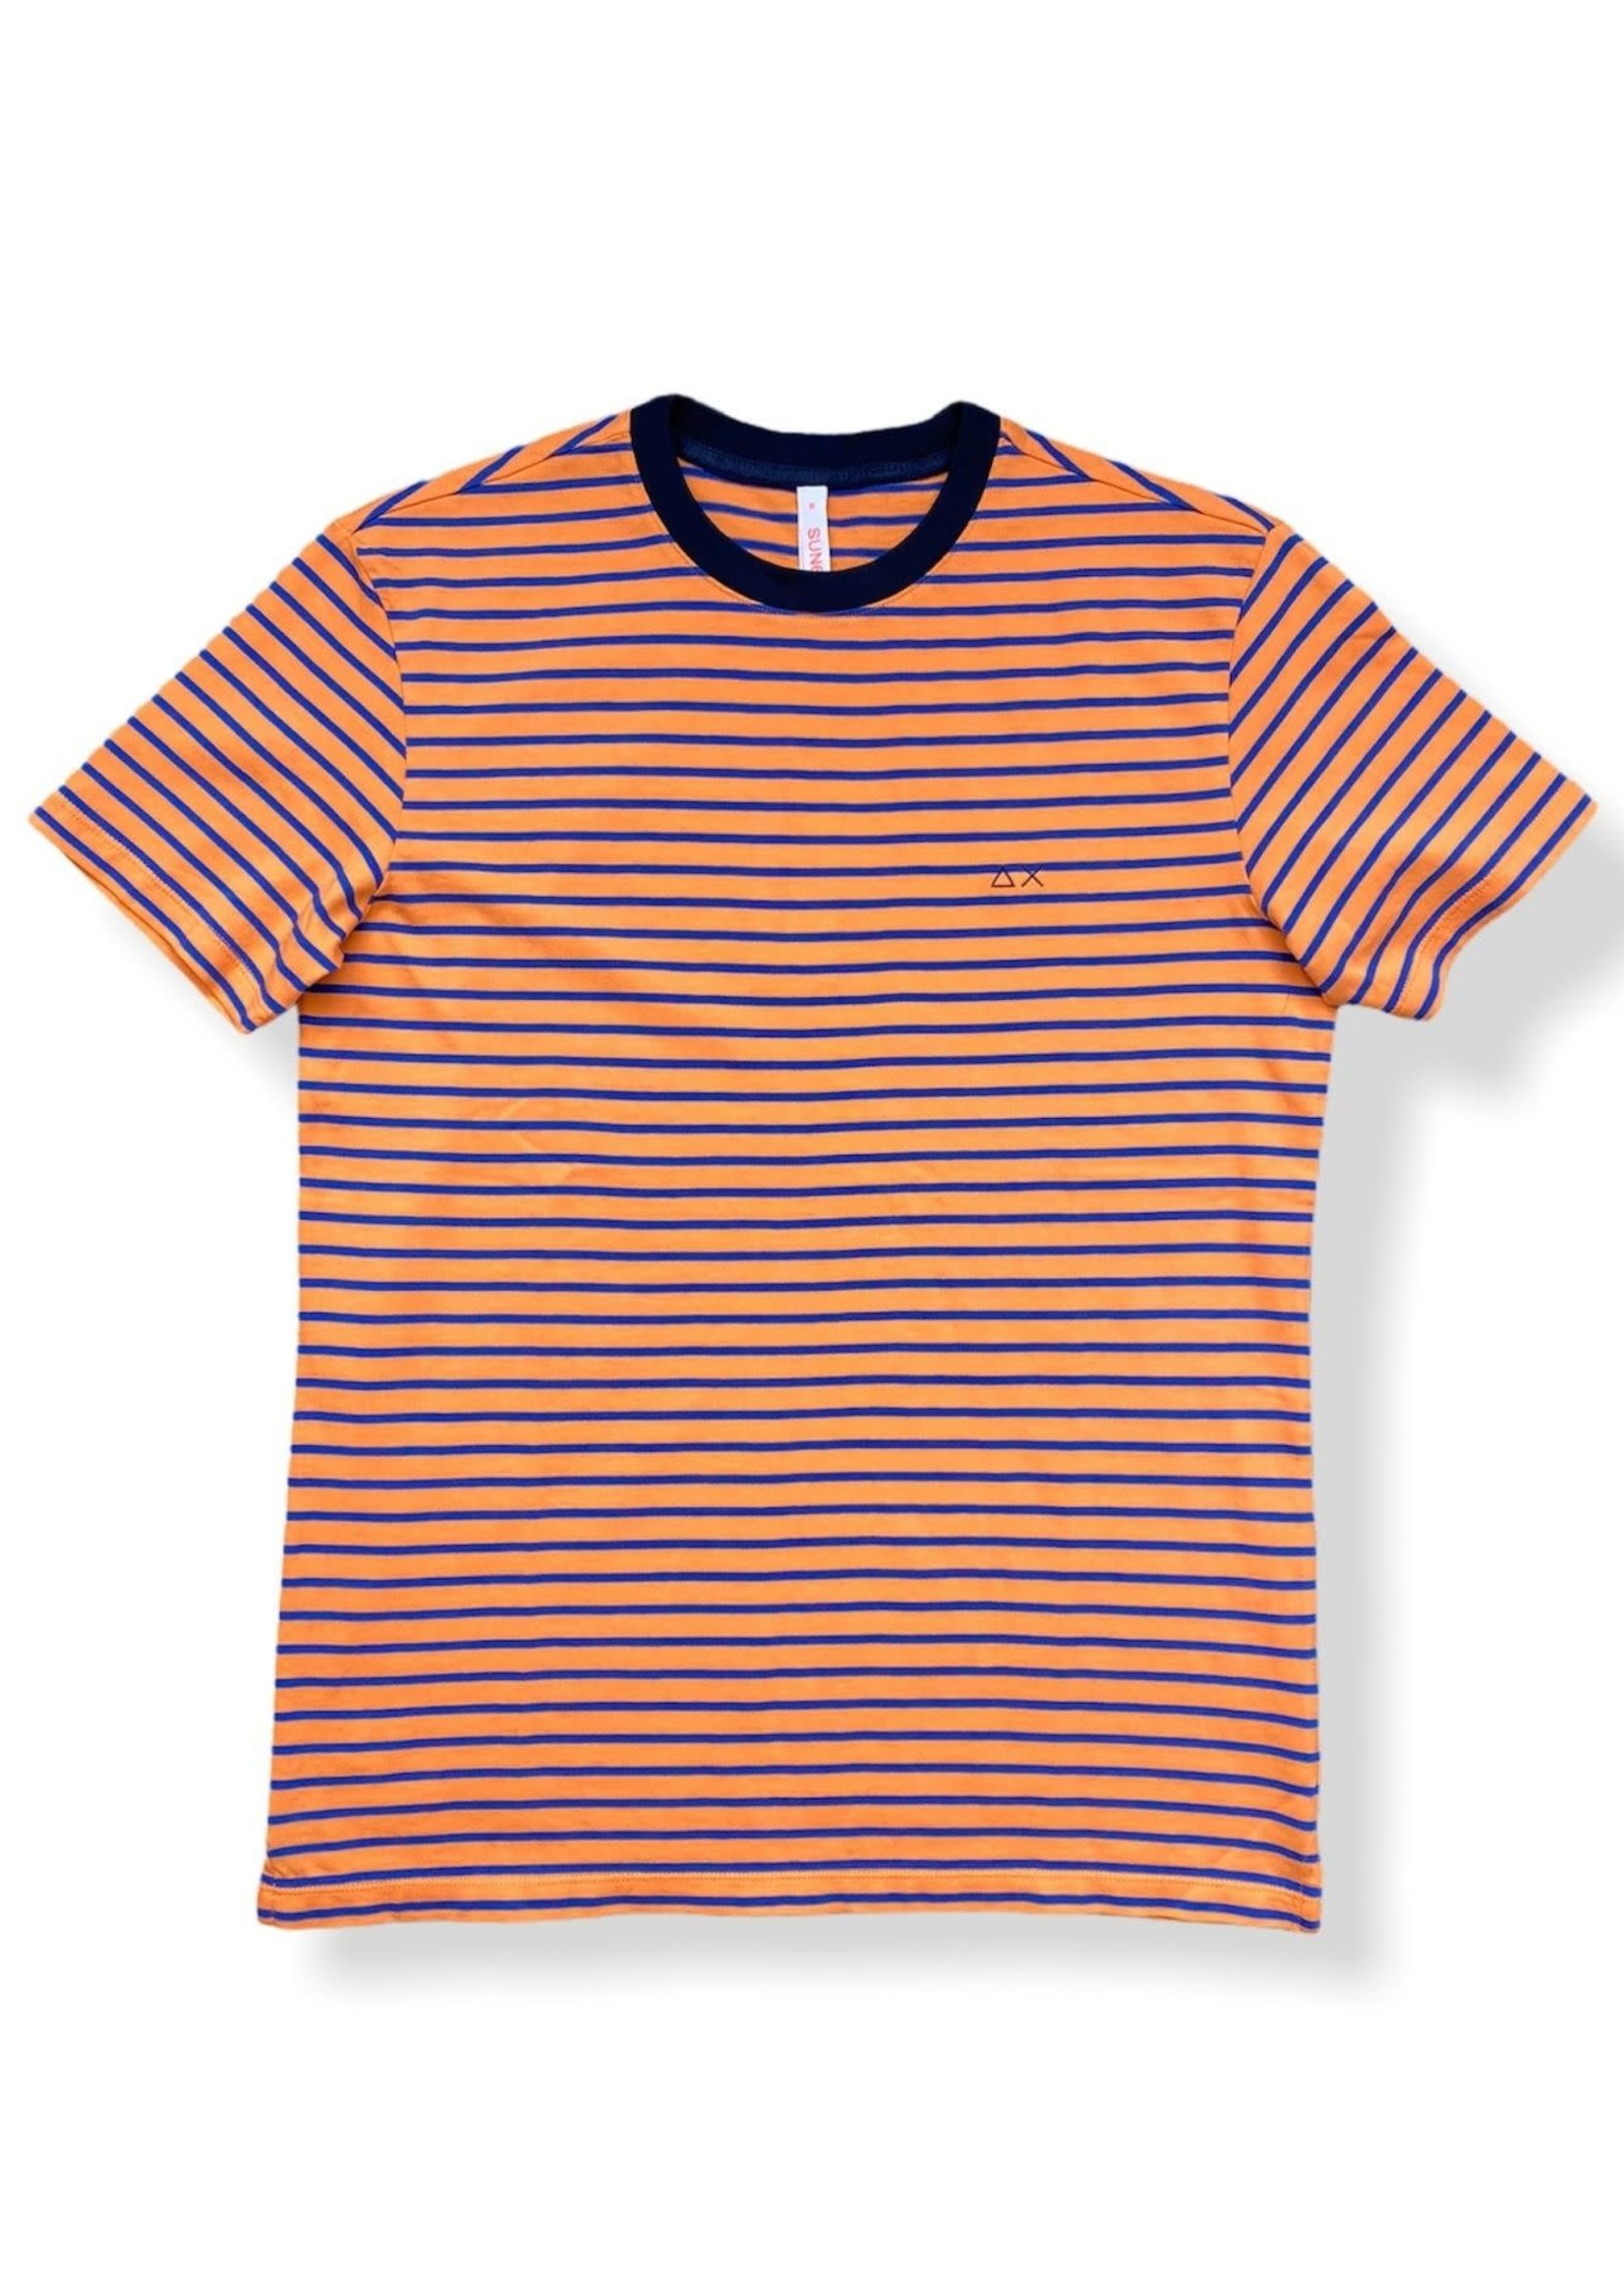 SUN68 T-Shirt Round Full Stripes | Orange/Blue | SUN68